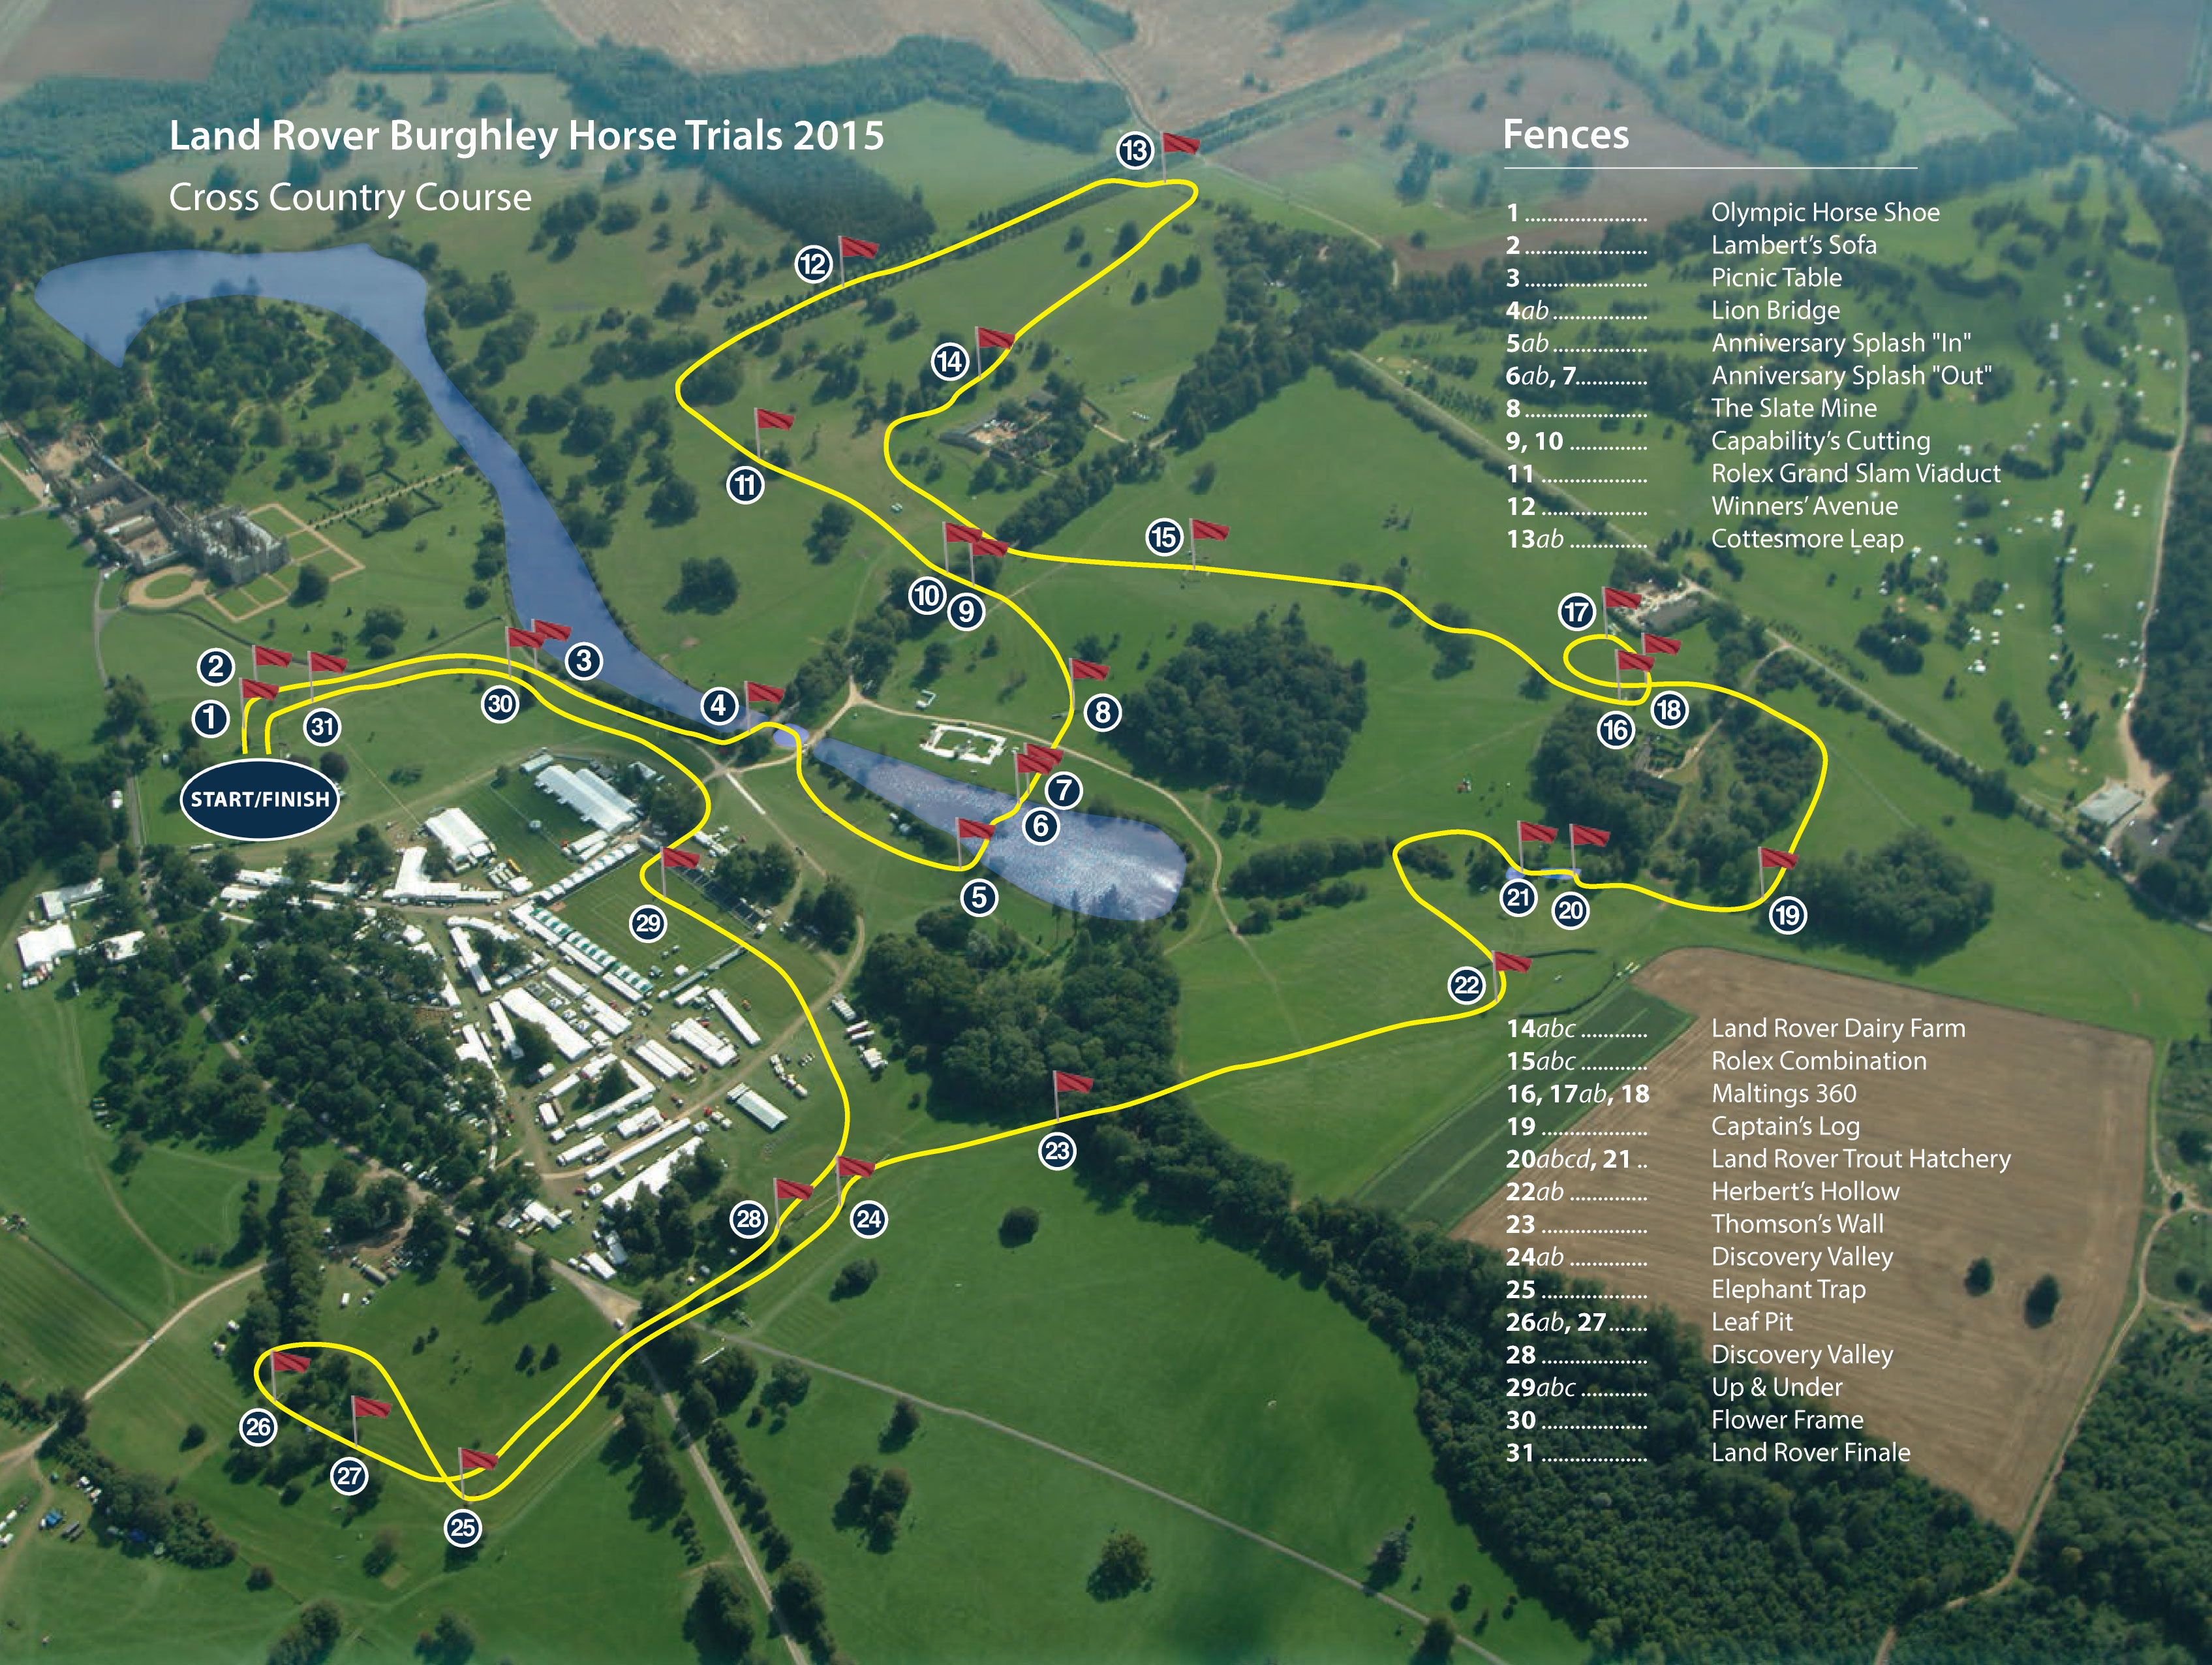 Land Rover Burghley Horse Trials Preview